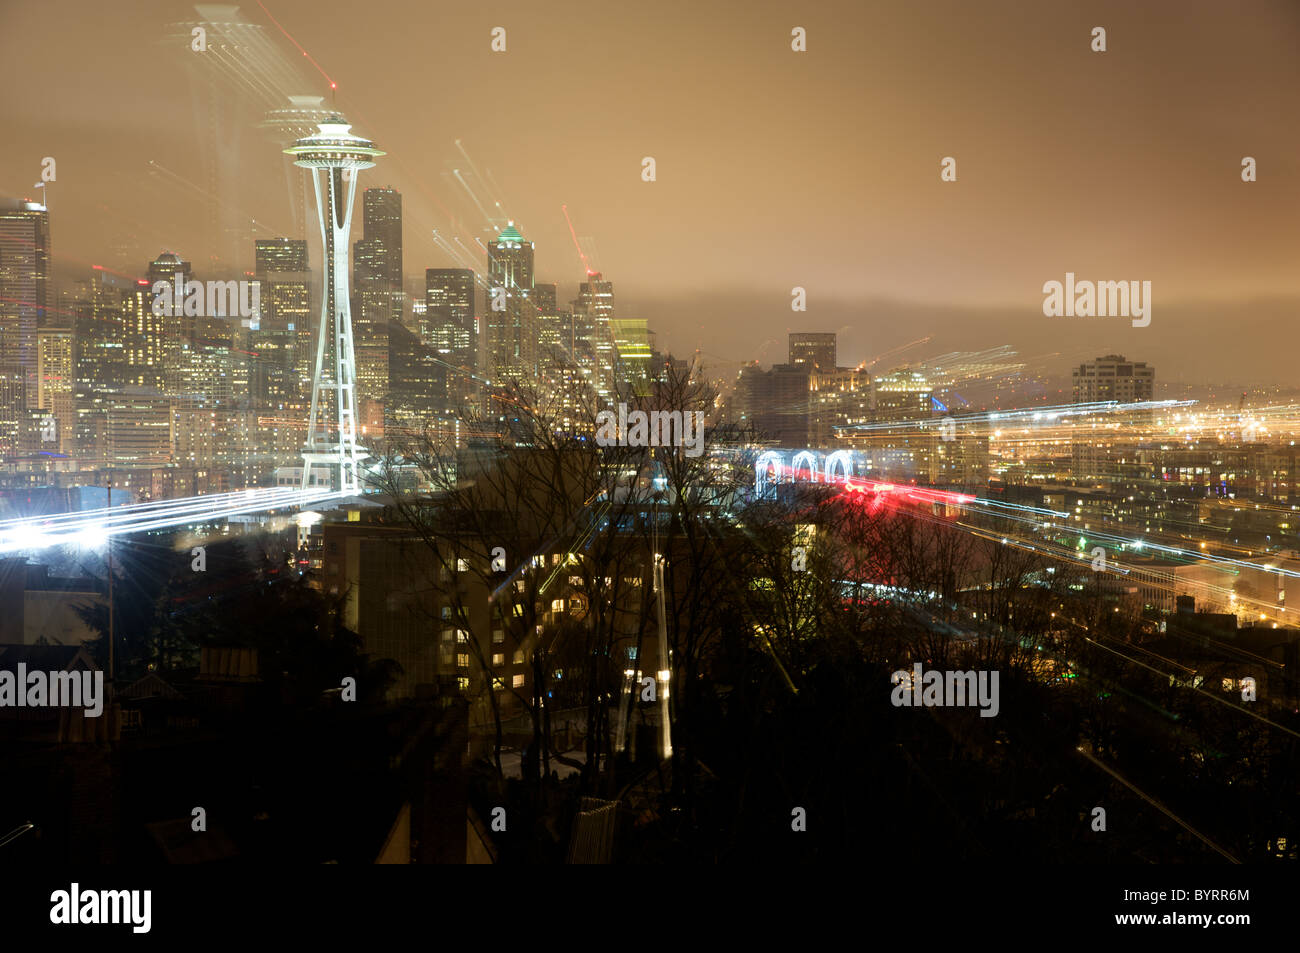 Looking south at downtown Seattle, Washington on a rainy night with the space needle rising high above the city. - Stock Image